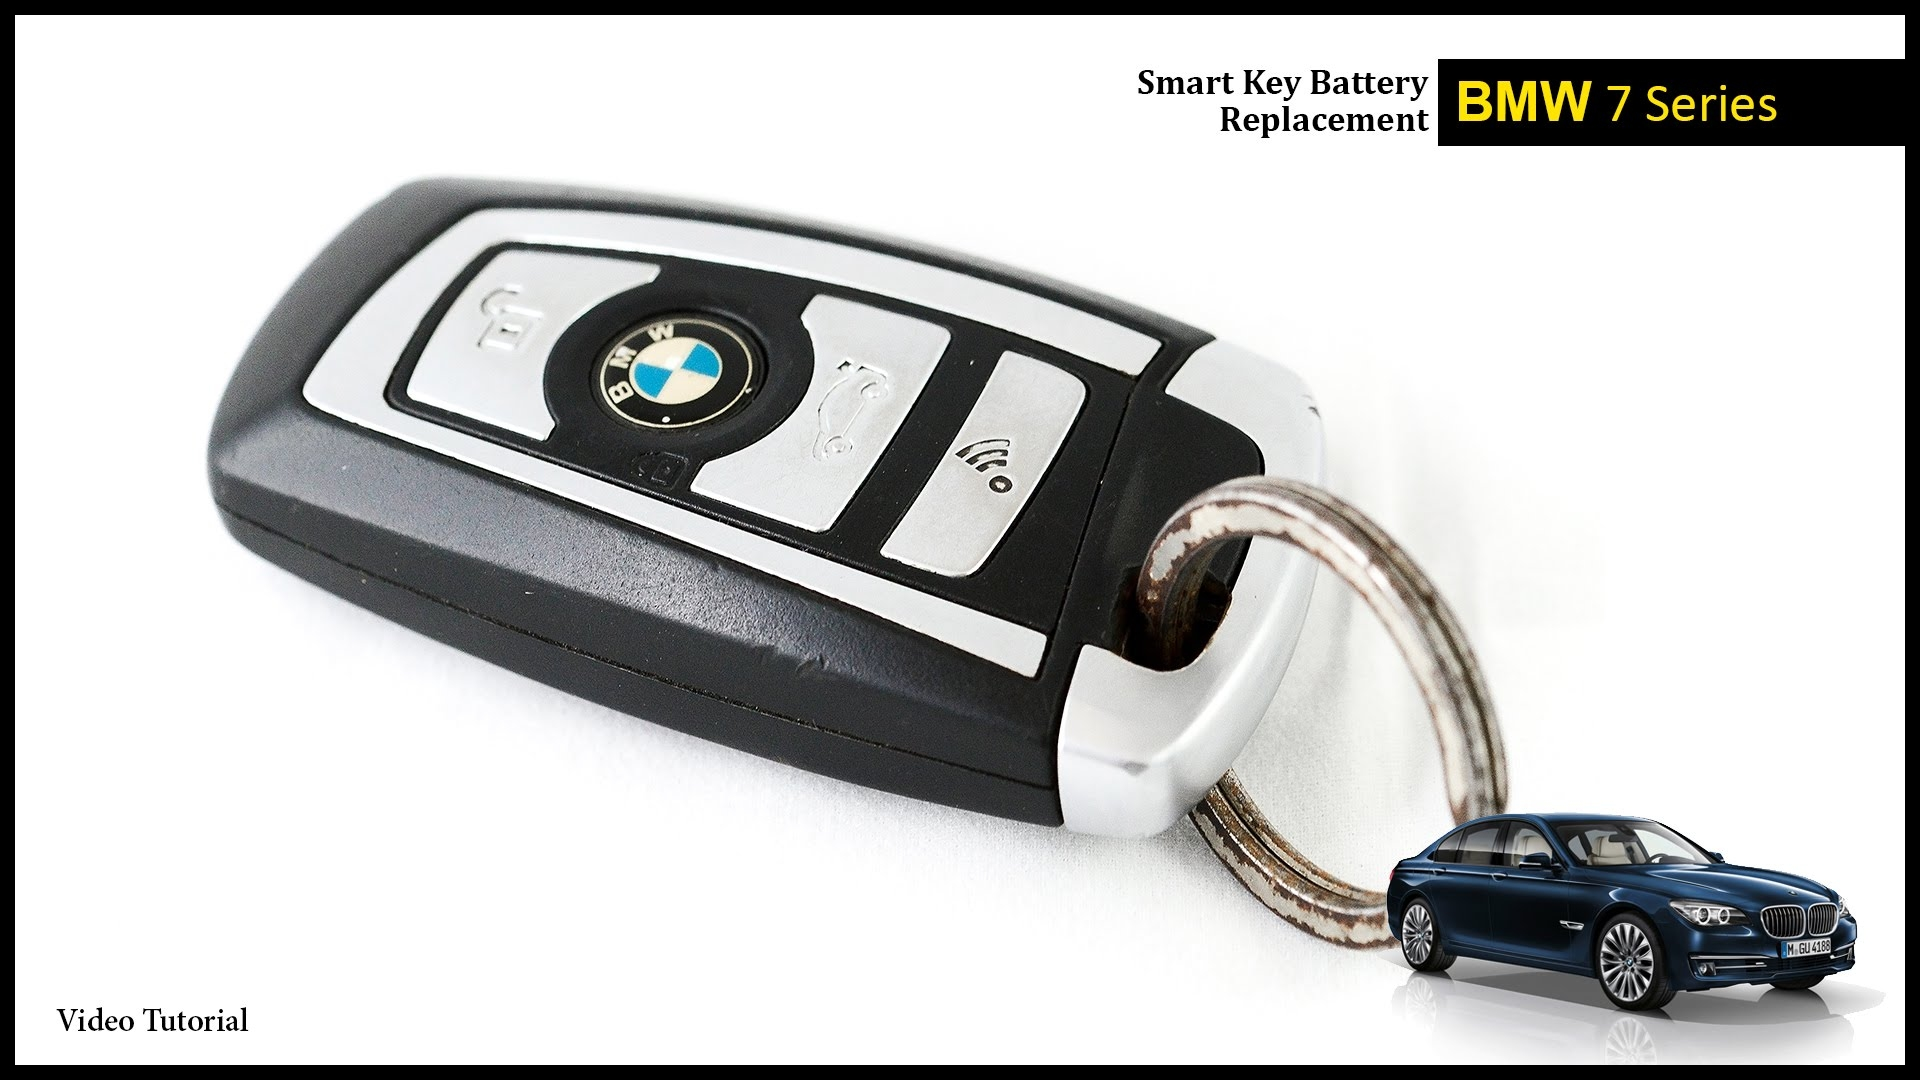 How Much Does A Bmw Key Replacement Cost - The Best Choice Car